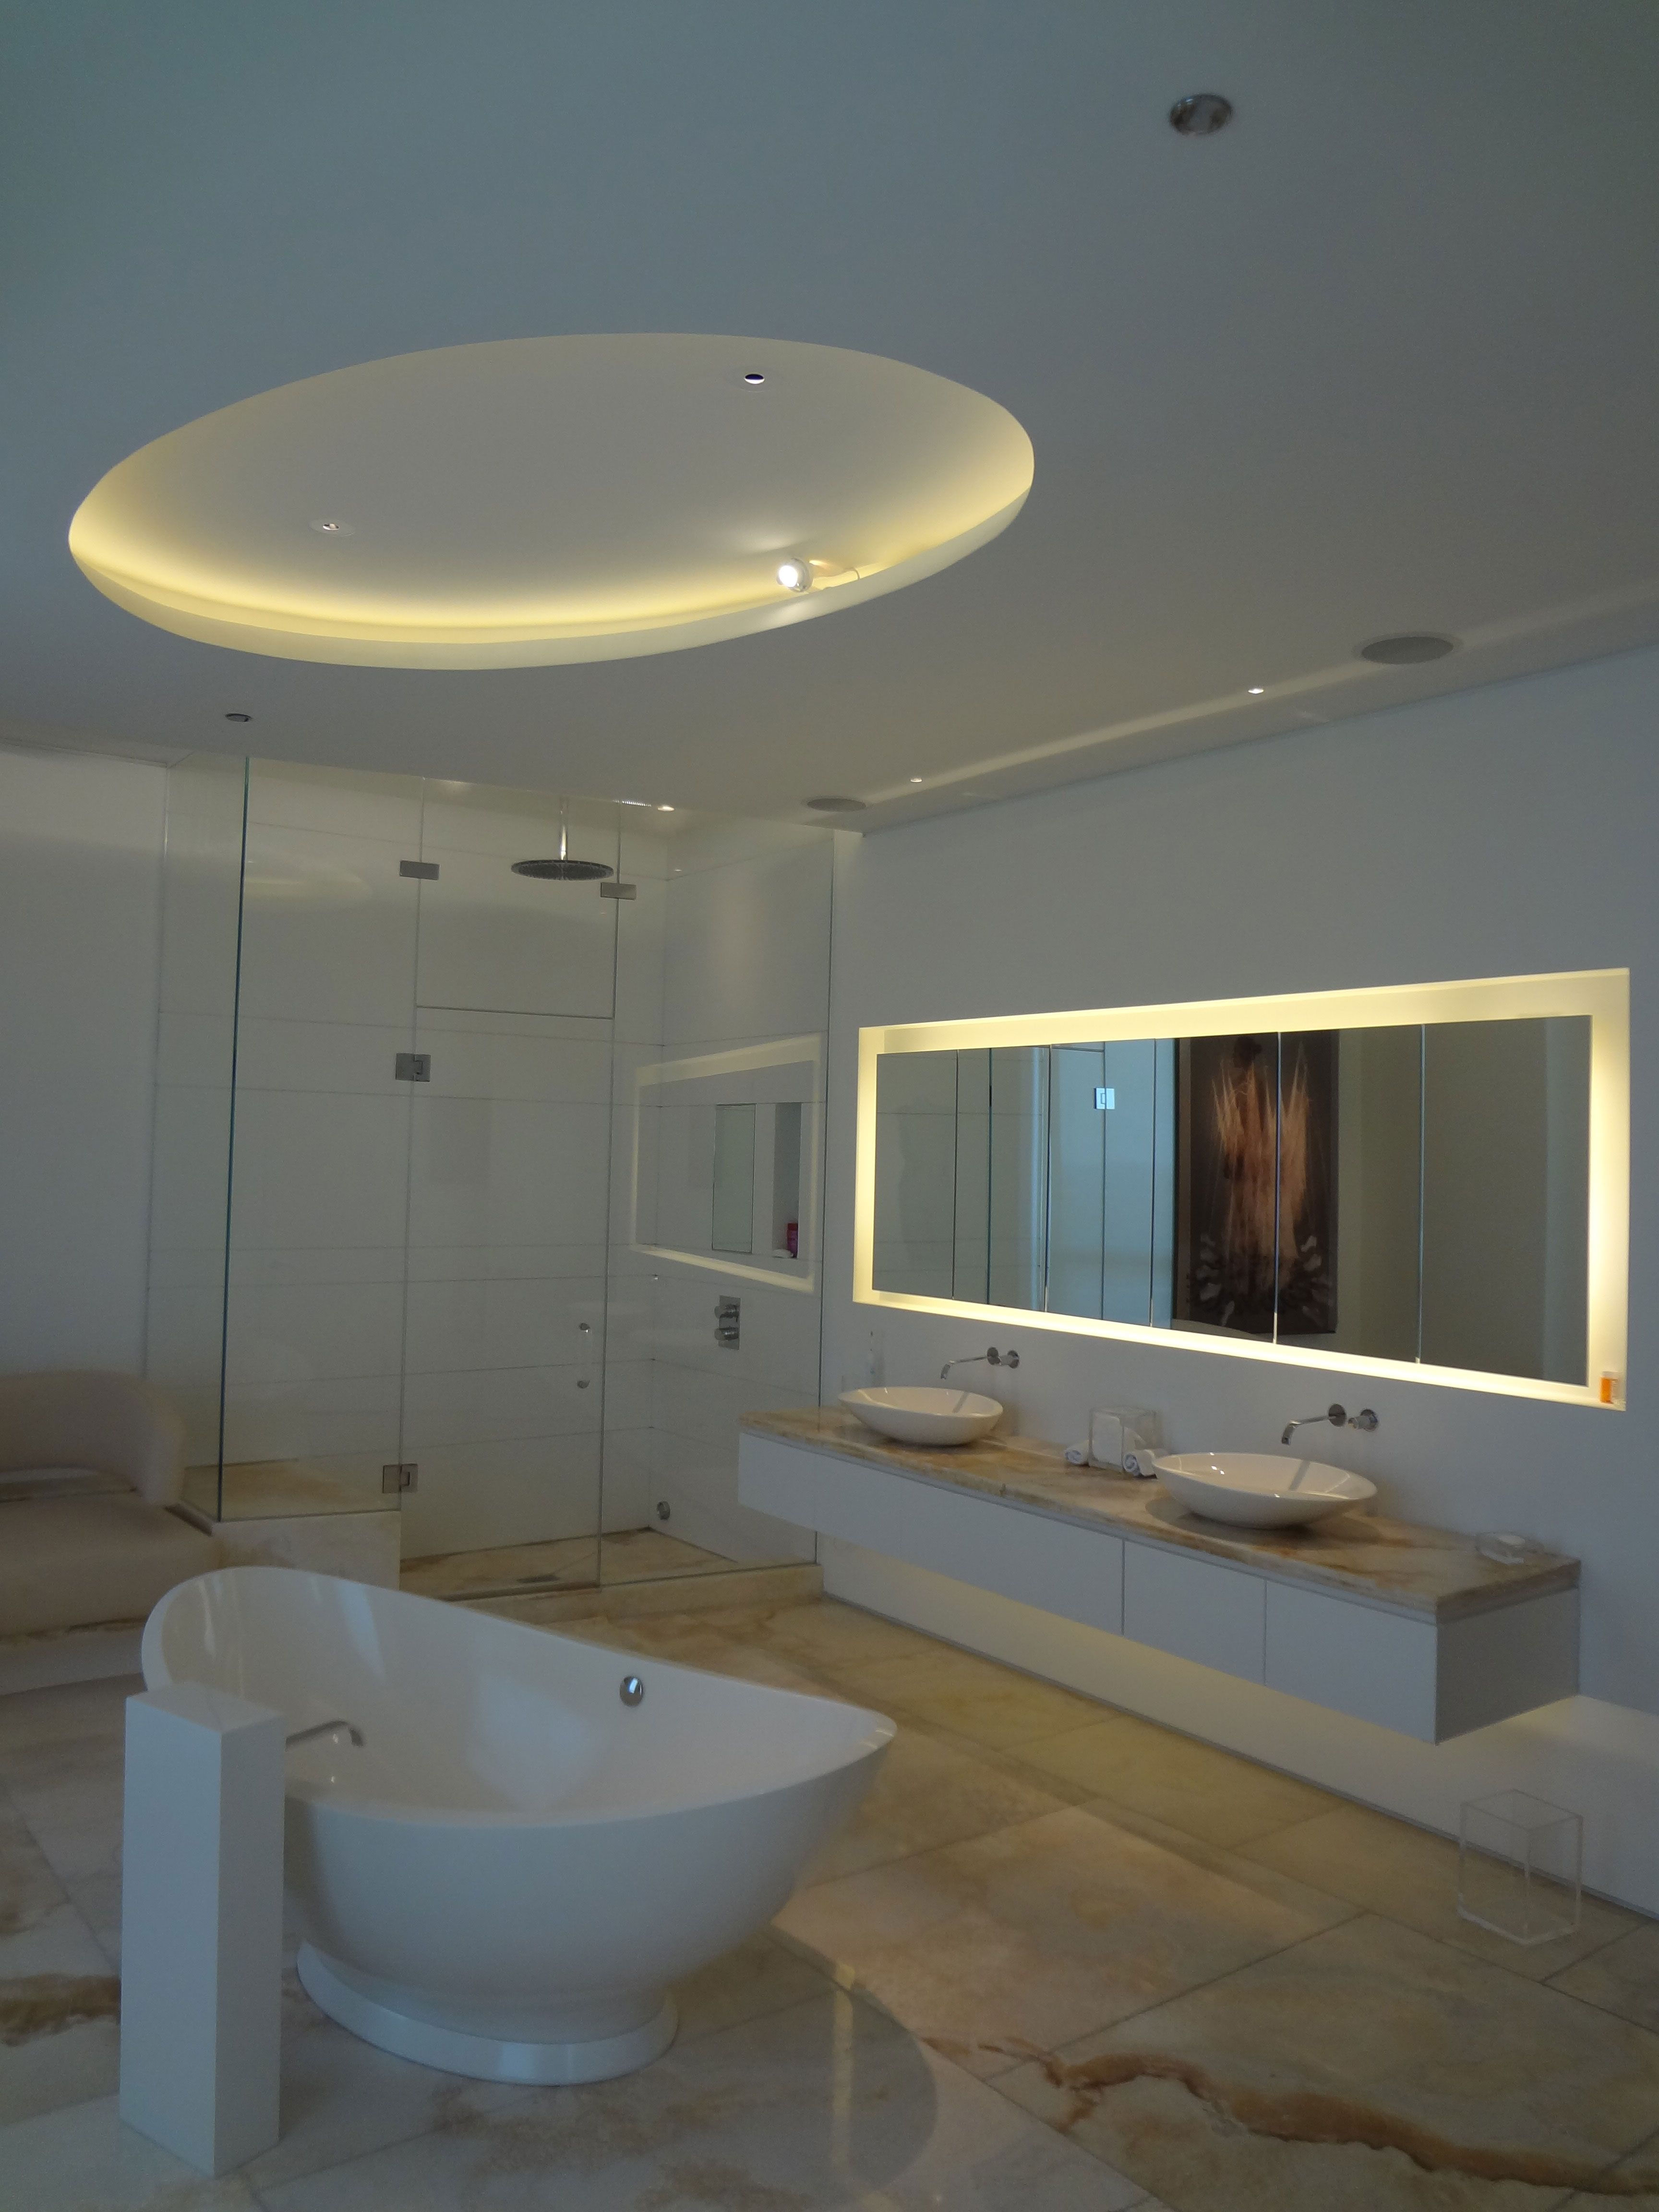 Bathroom Lights Usa floating led bath-spa lights | lighting design, ceilings and lights